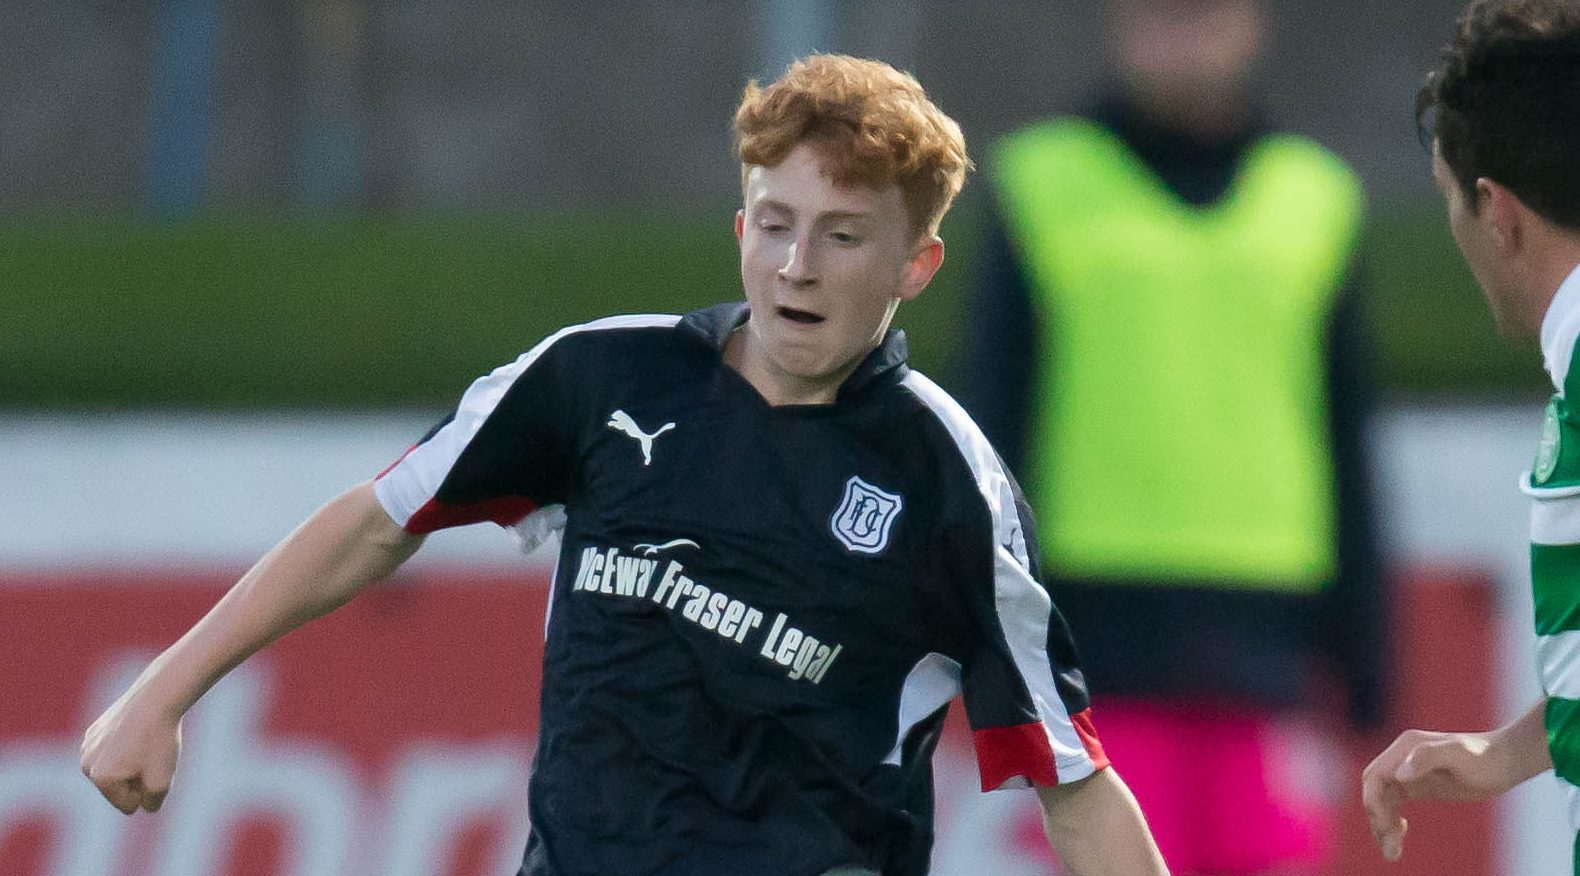 14 year old George Johnston in action for Dundee under-20s v Celtic.